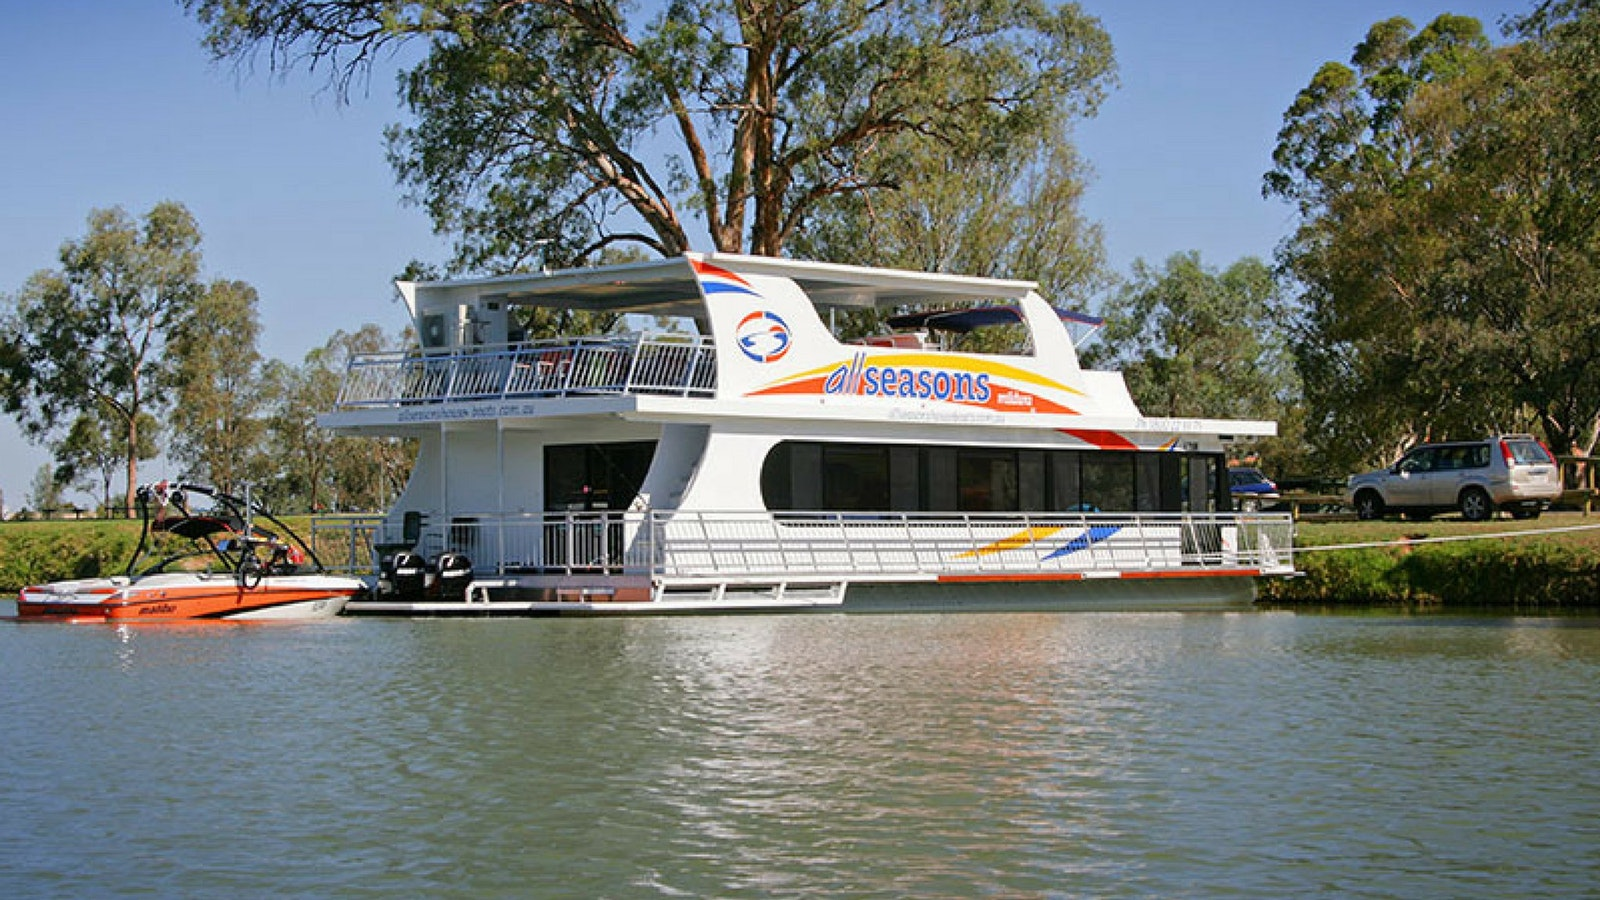 Explore the Murray River with All Seasons Houseboats